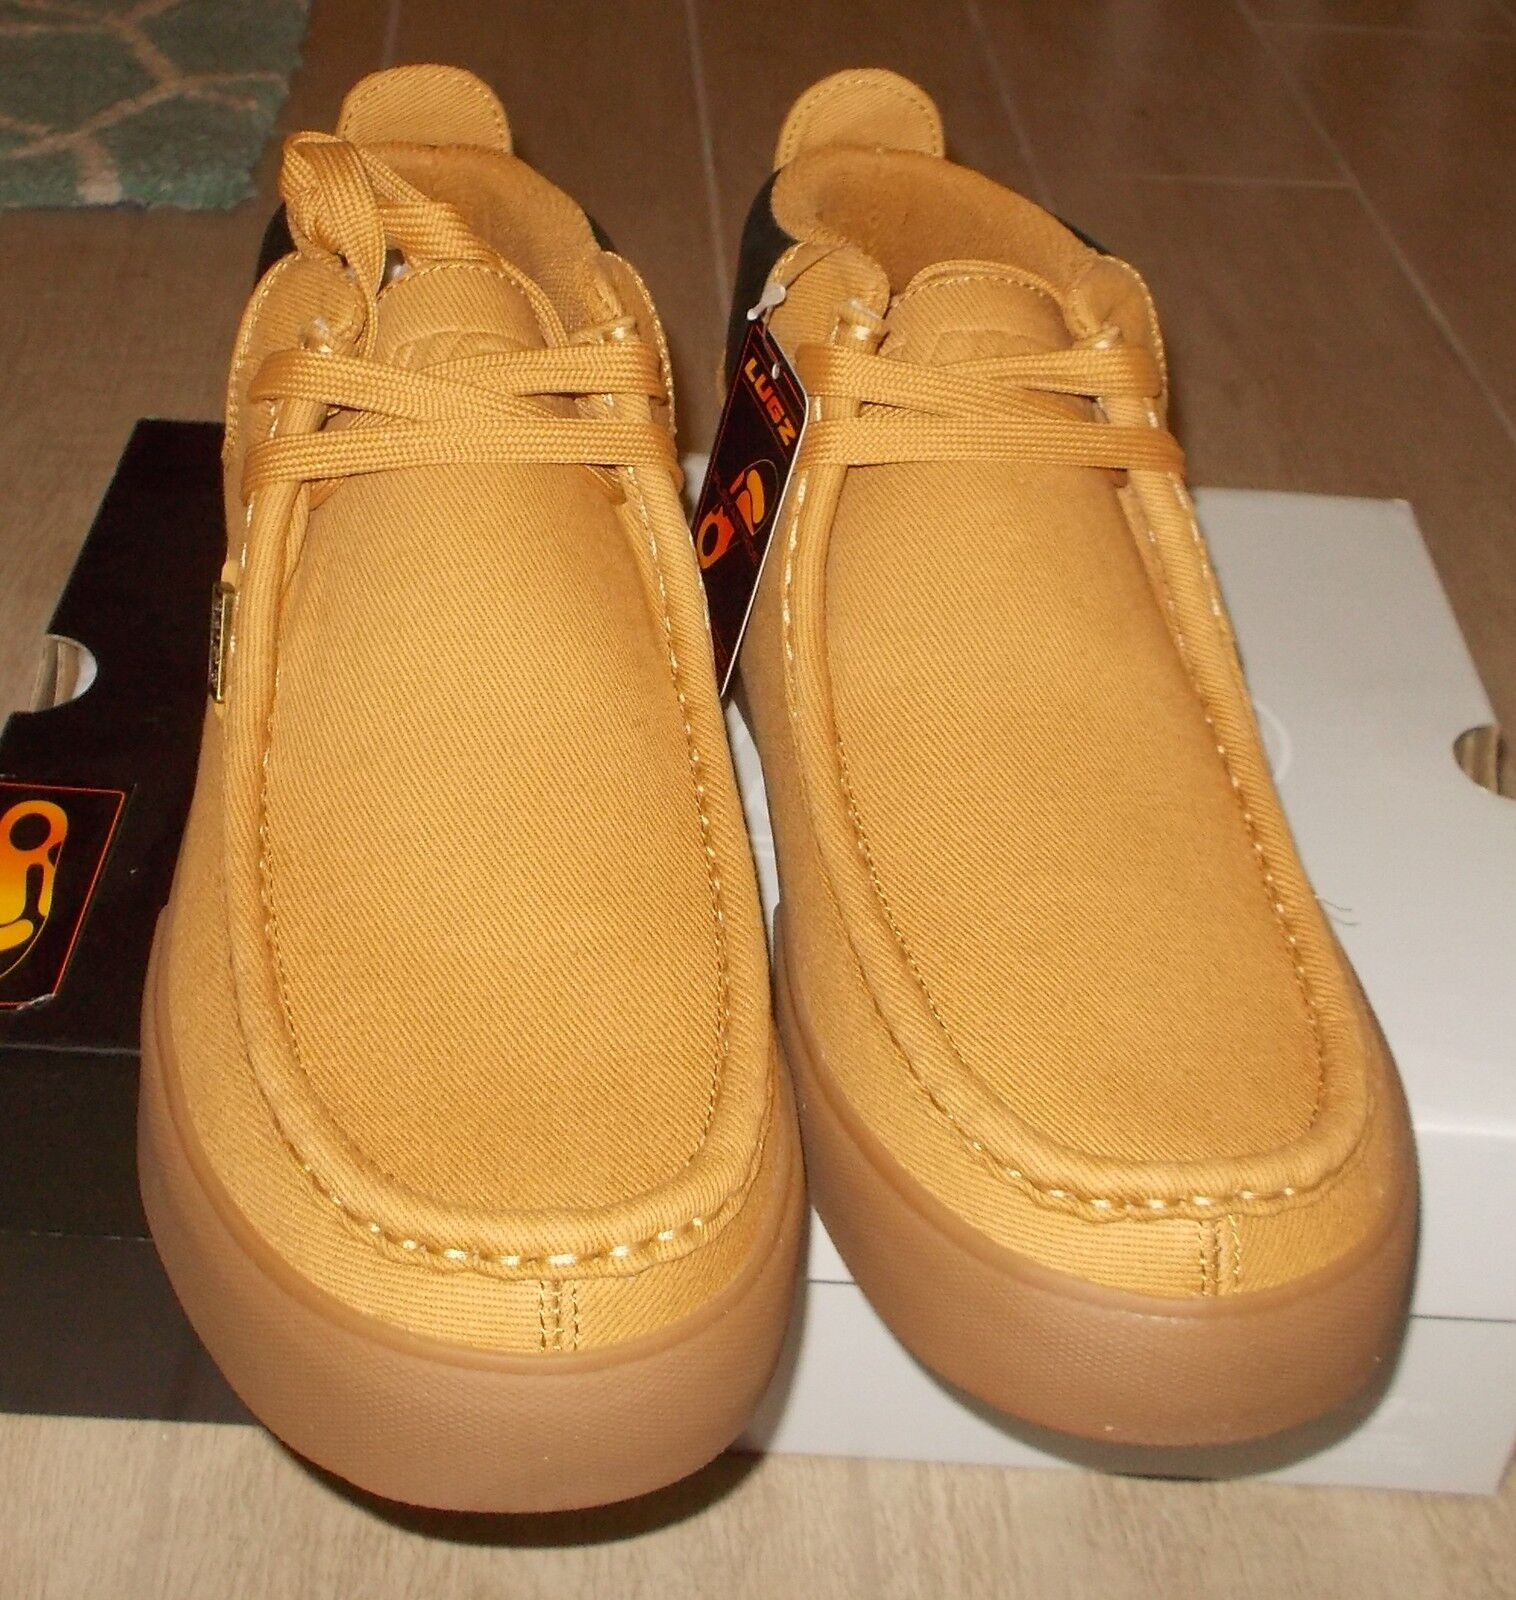 NEW LUGZ STRIDER SS Wallabee Wallaby Stivali Uomo Wheat Gum Gum Wheat NIB c1c579